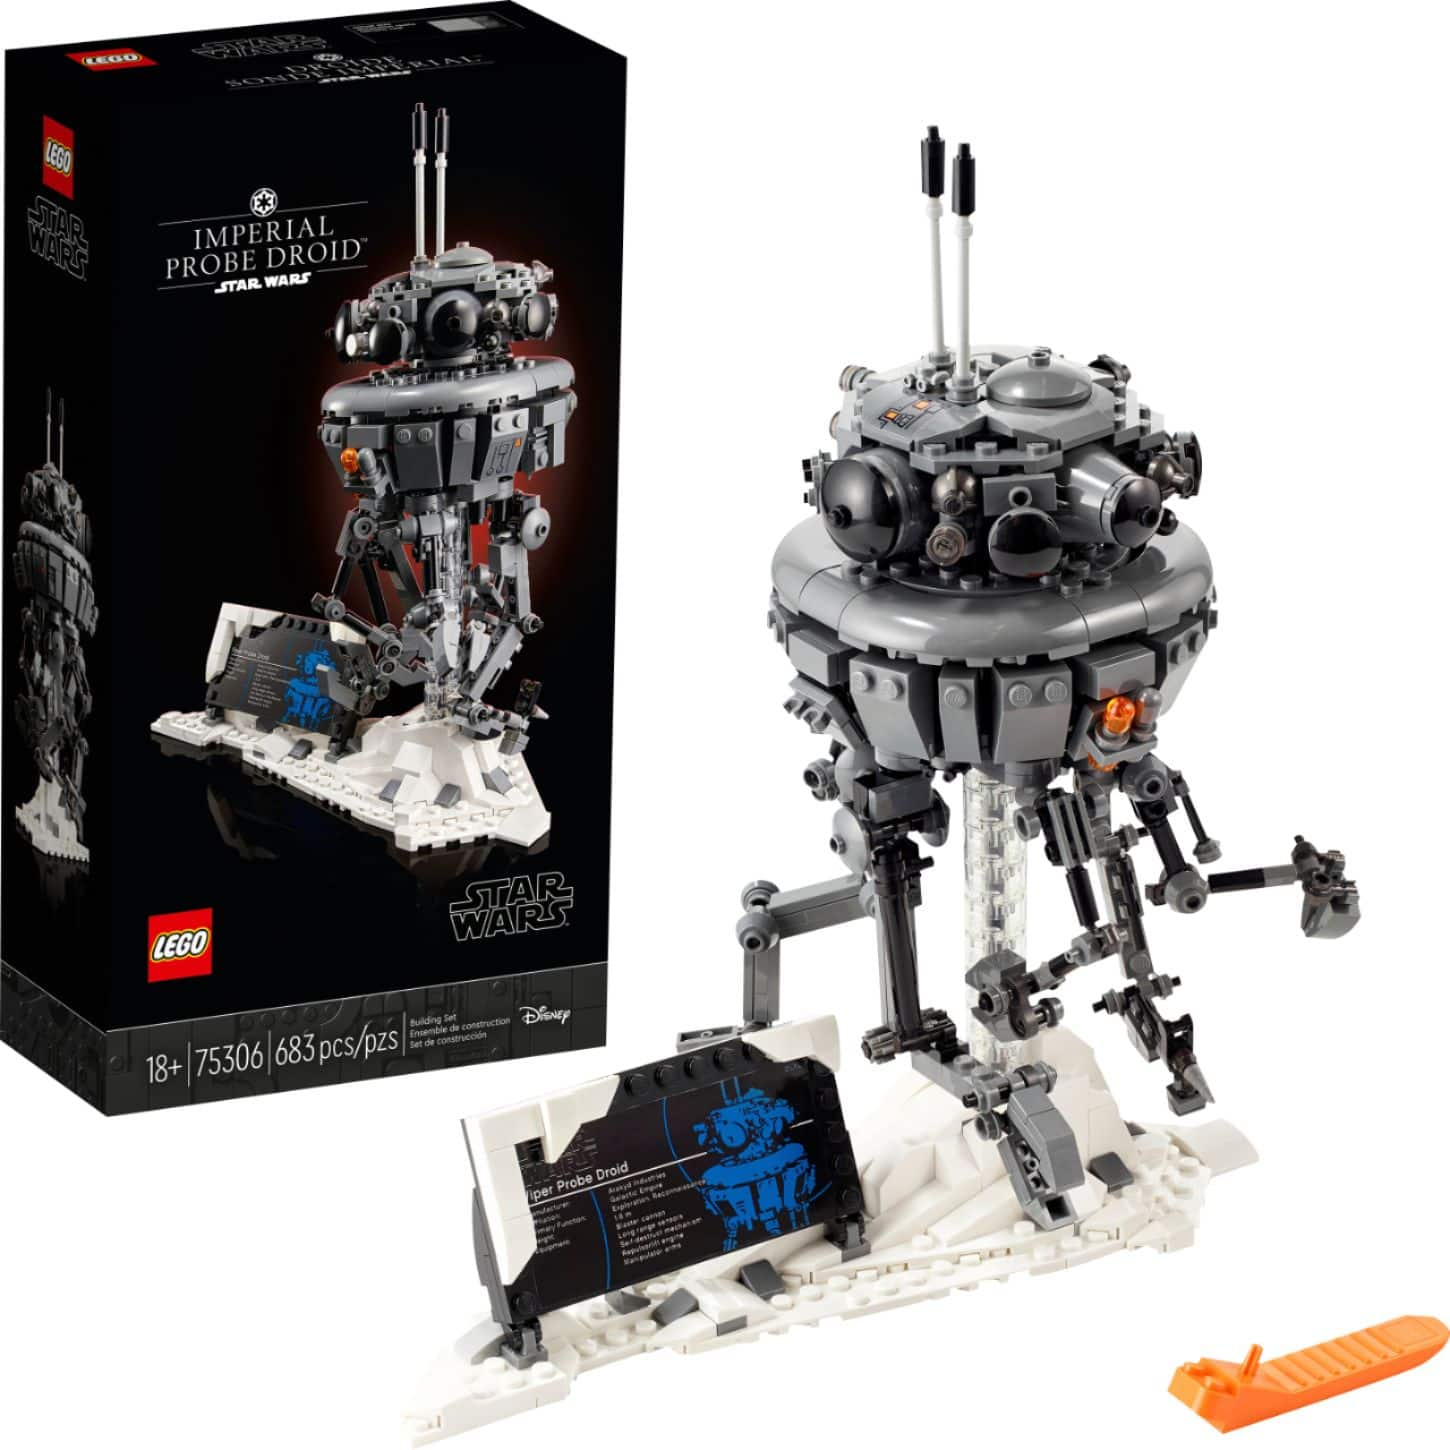 Buy a select Star Wars LEGO set, get a $10 Best Buy gift card